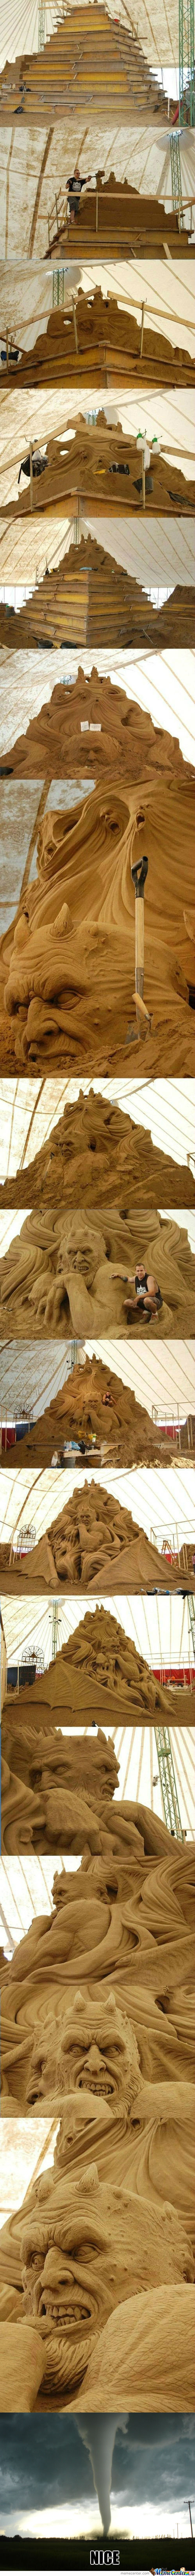 [Rmx] Epic Sand Sculpture